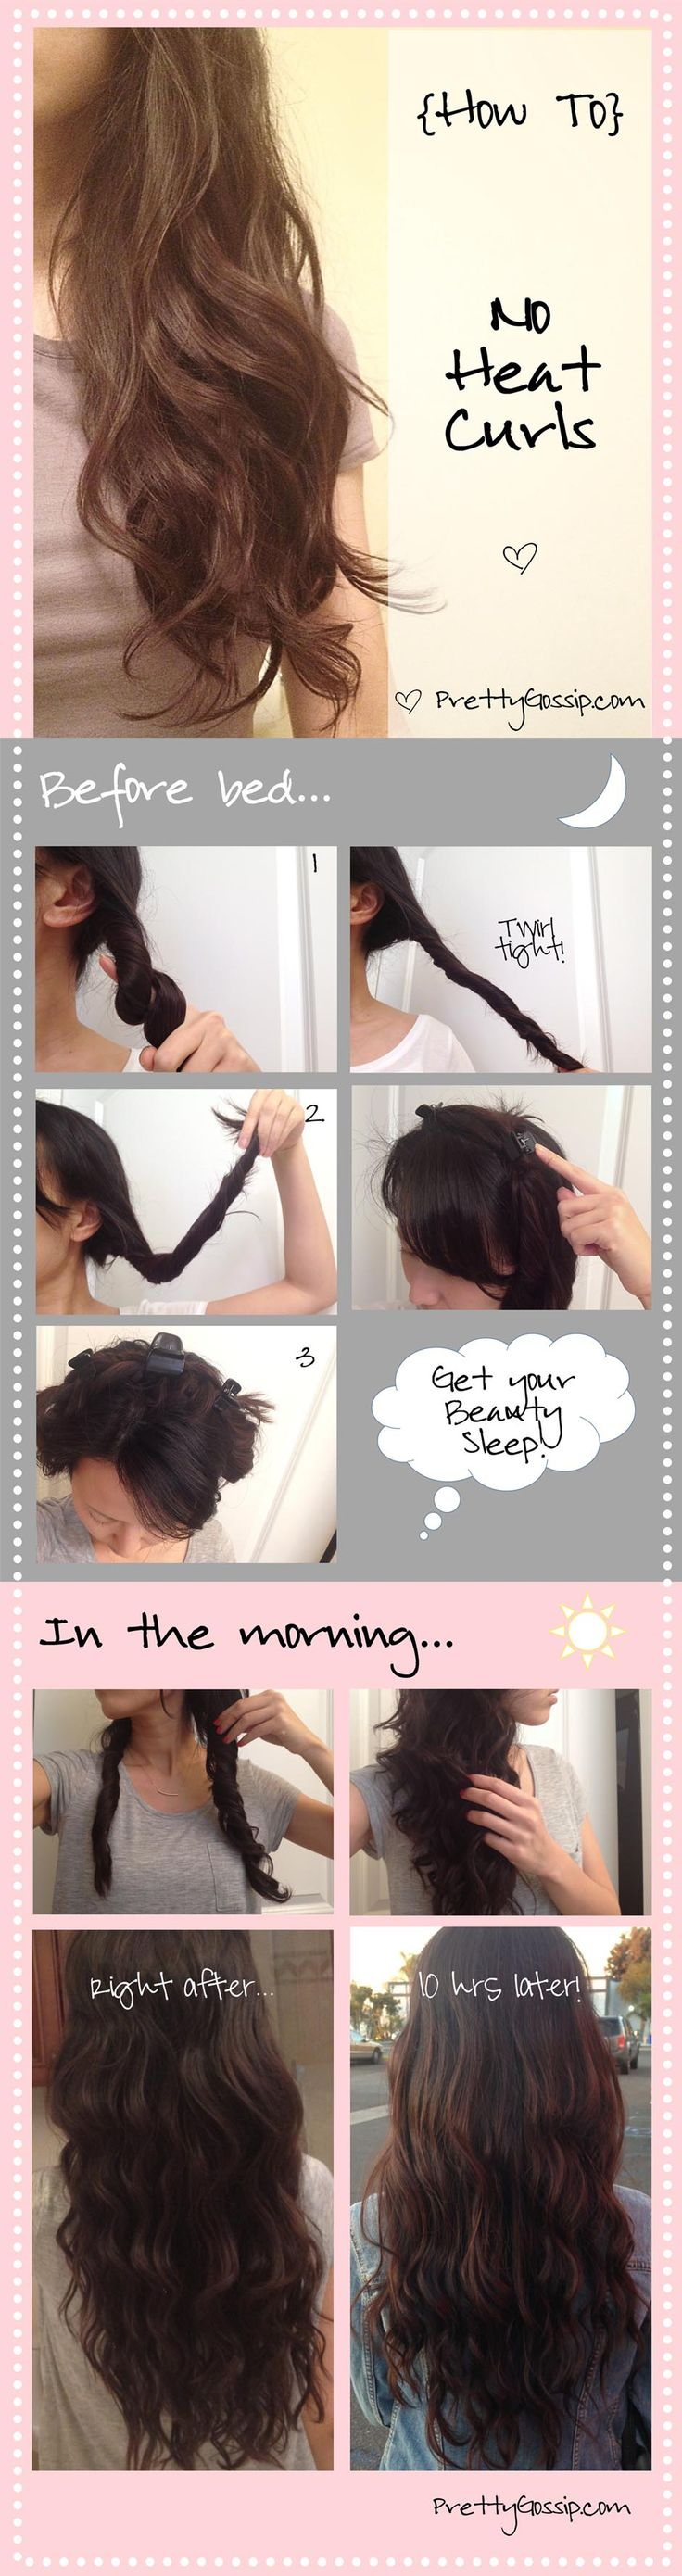 5 Ways To Make Your Hair Curly With No Heat - Fashion Diva Design